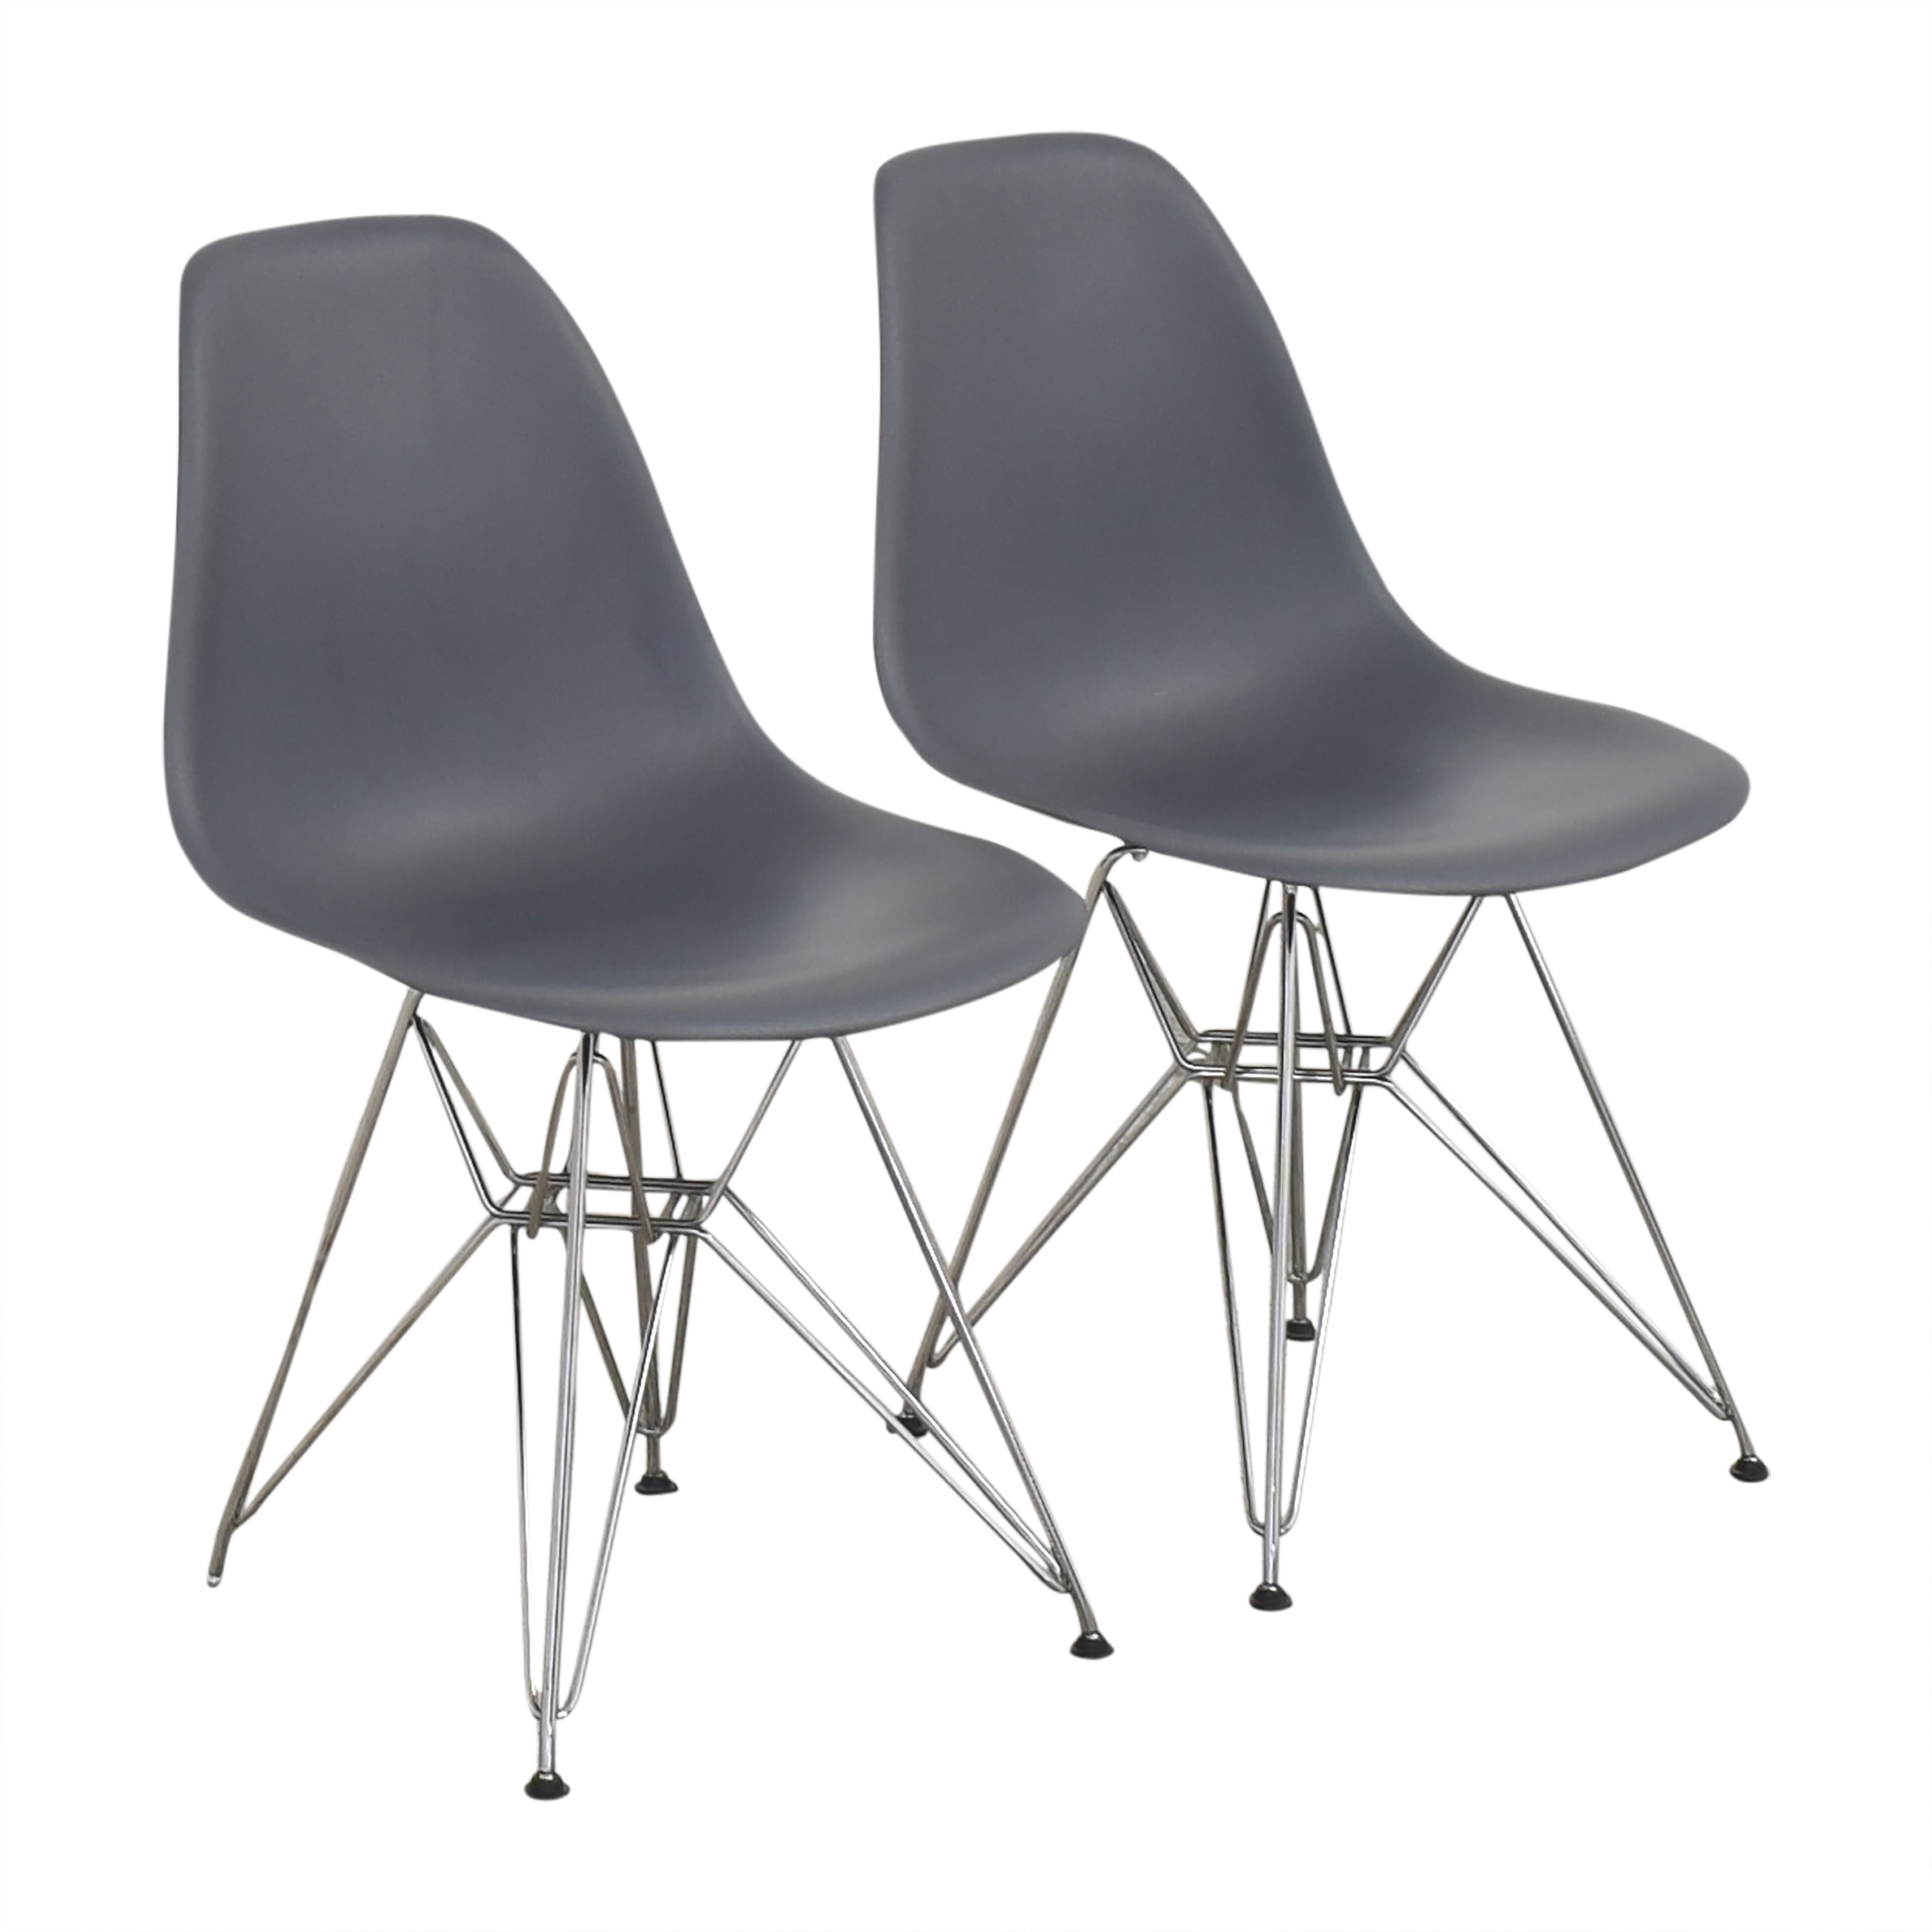 buy Design Within Reach Herman Miller Eames Molded Side Chairs Design Within Reach Accent Chairs